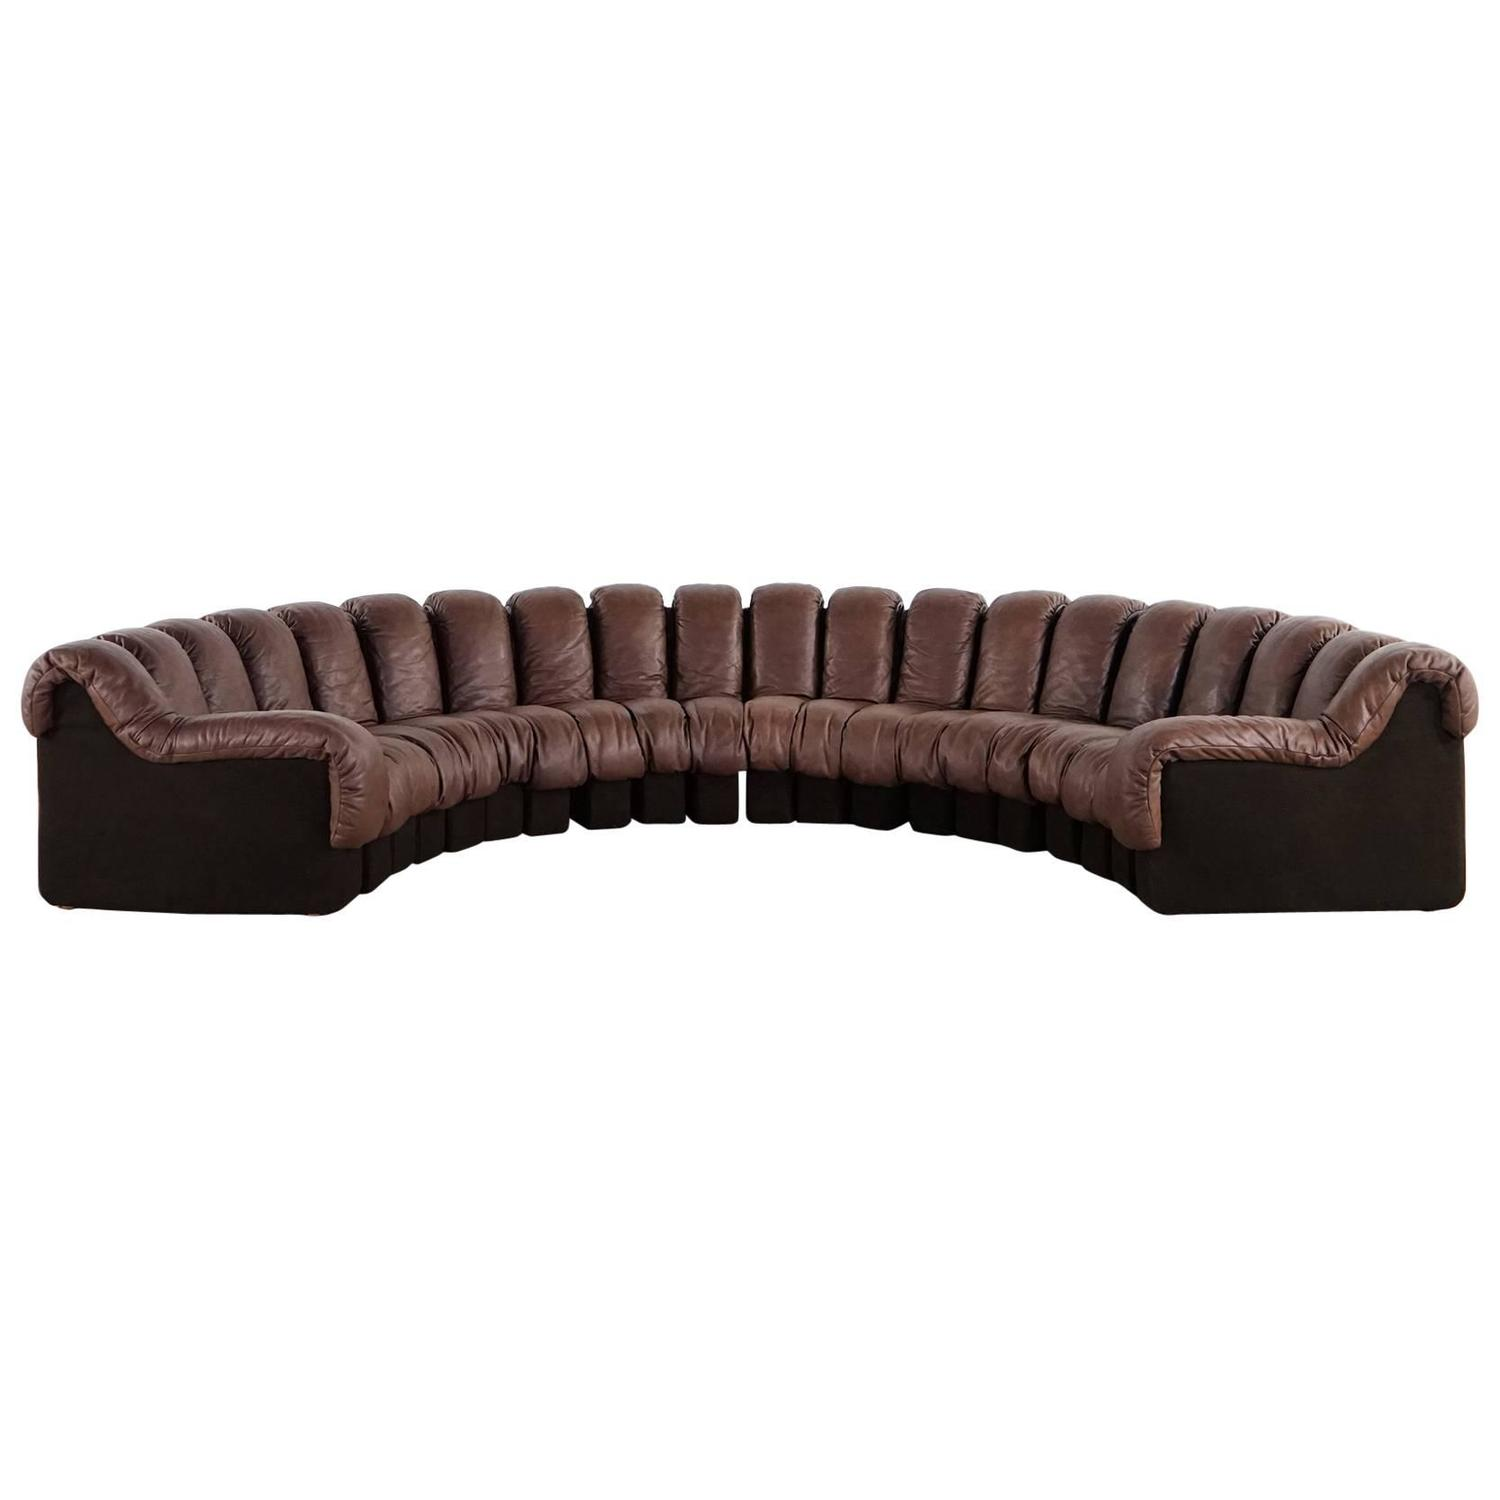 De Sede Ds 600 Sofa By Ueli Berger And Riva 1972 Chocolate Leather 20 Elements At 1stdibs